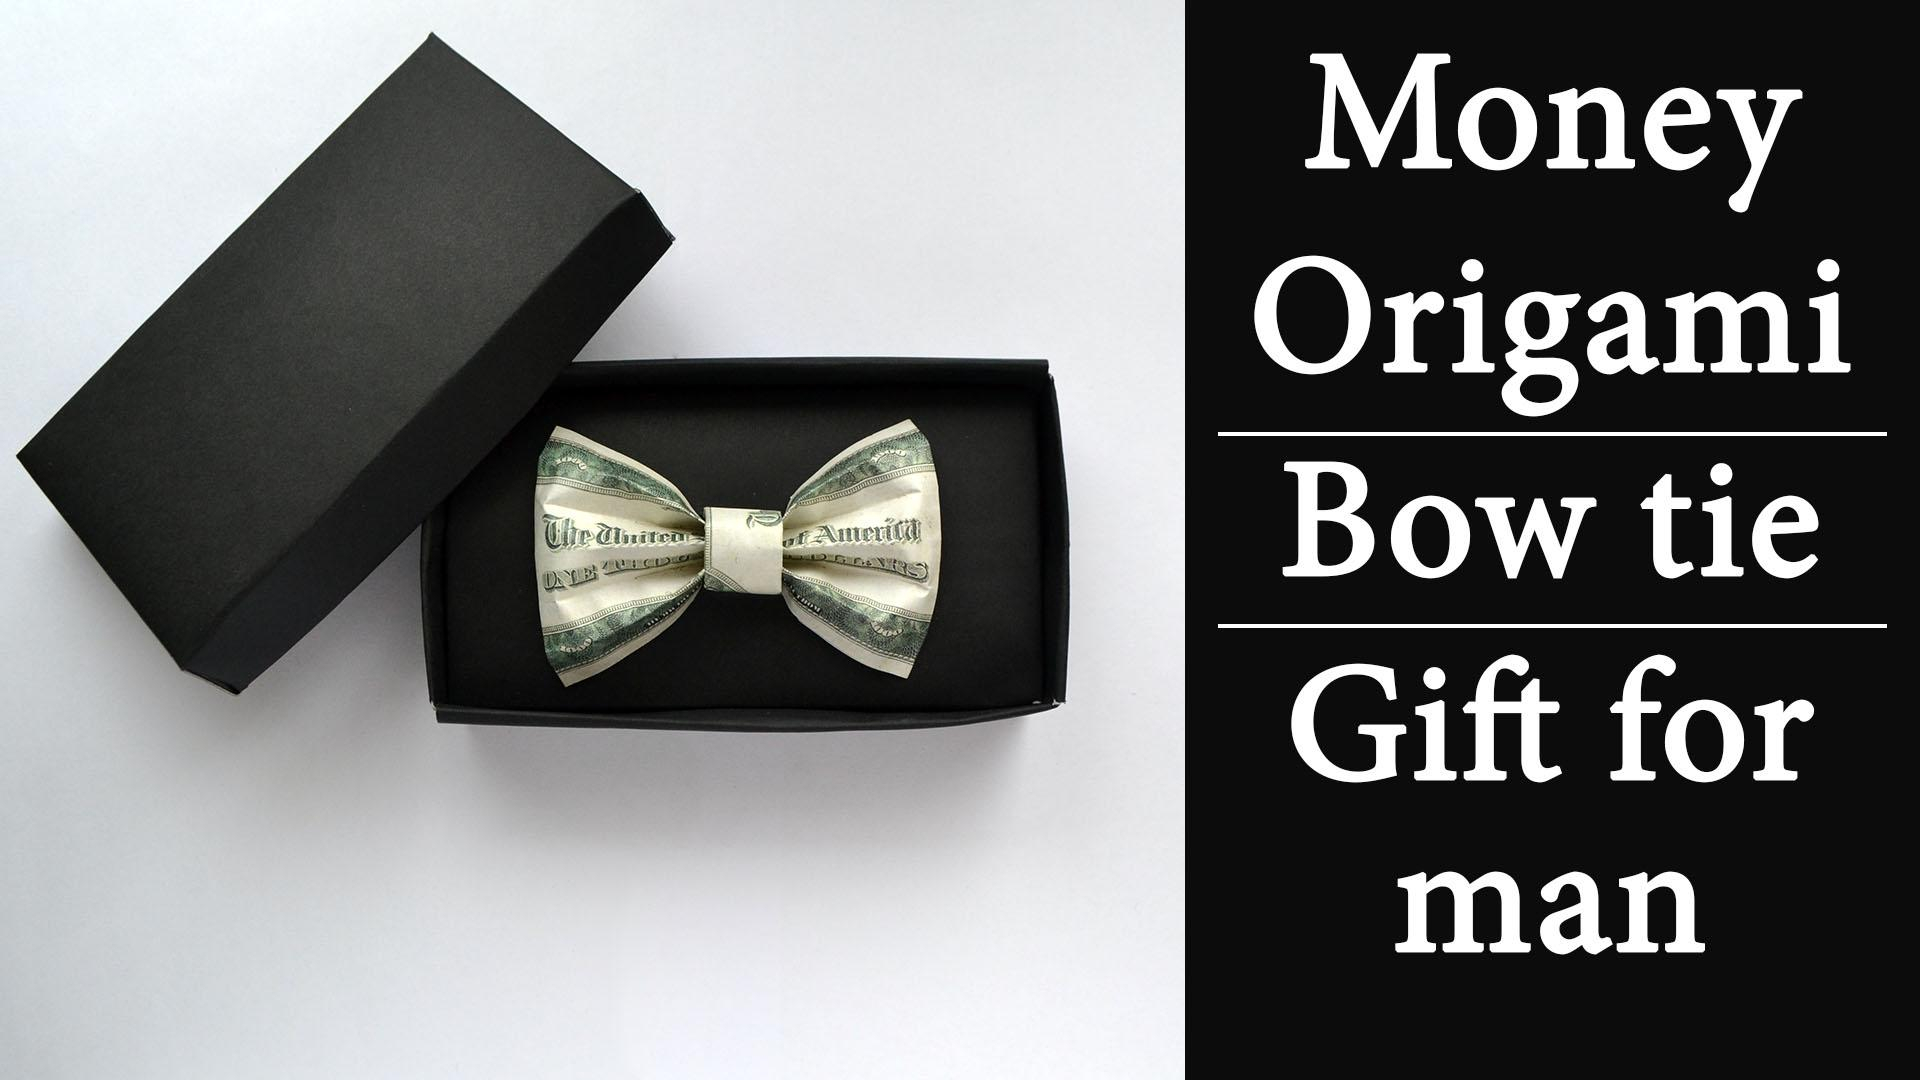 Dollar Origami Bow Tie Money Bow Tie In Gift Box Excellent Gift For Man Origami Dollar